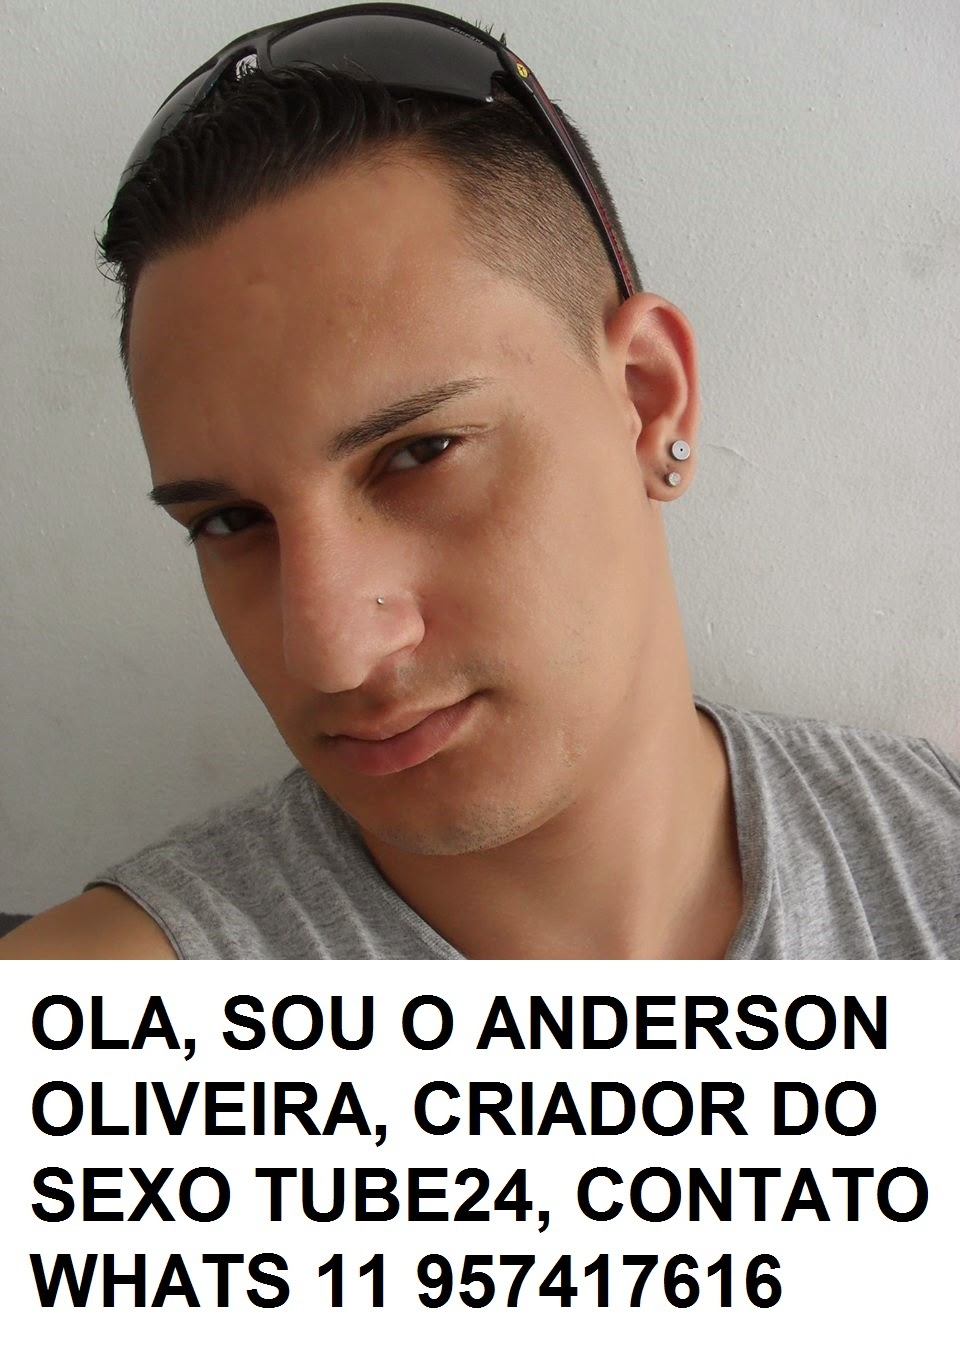 CRIADOR DO SEXO TUBE 24